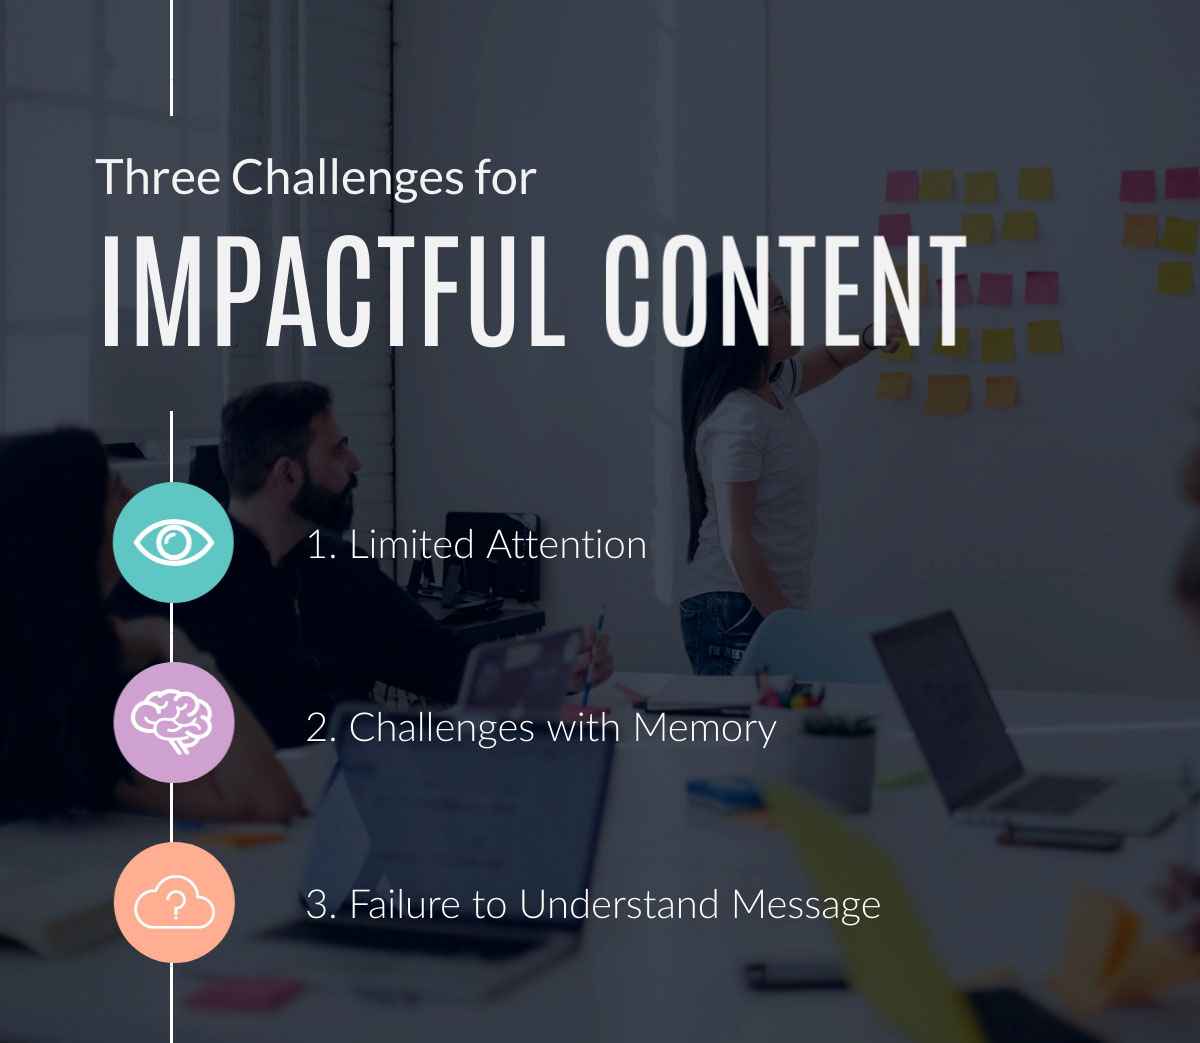 visual communication - three challenges for impactful content infographic